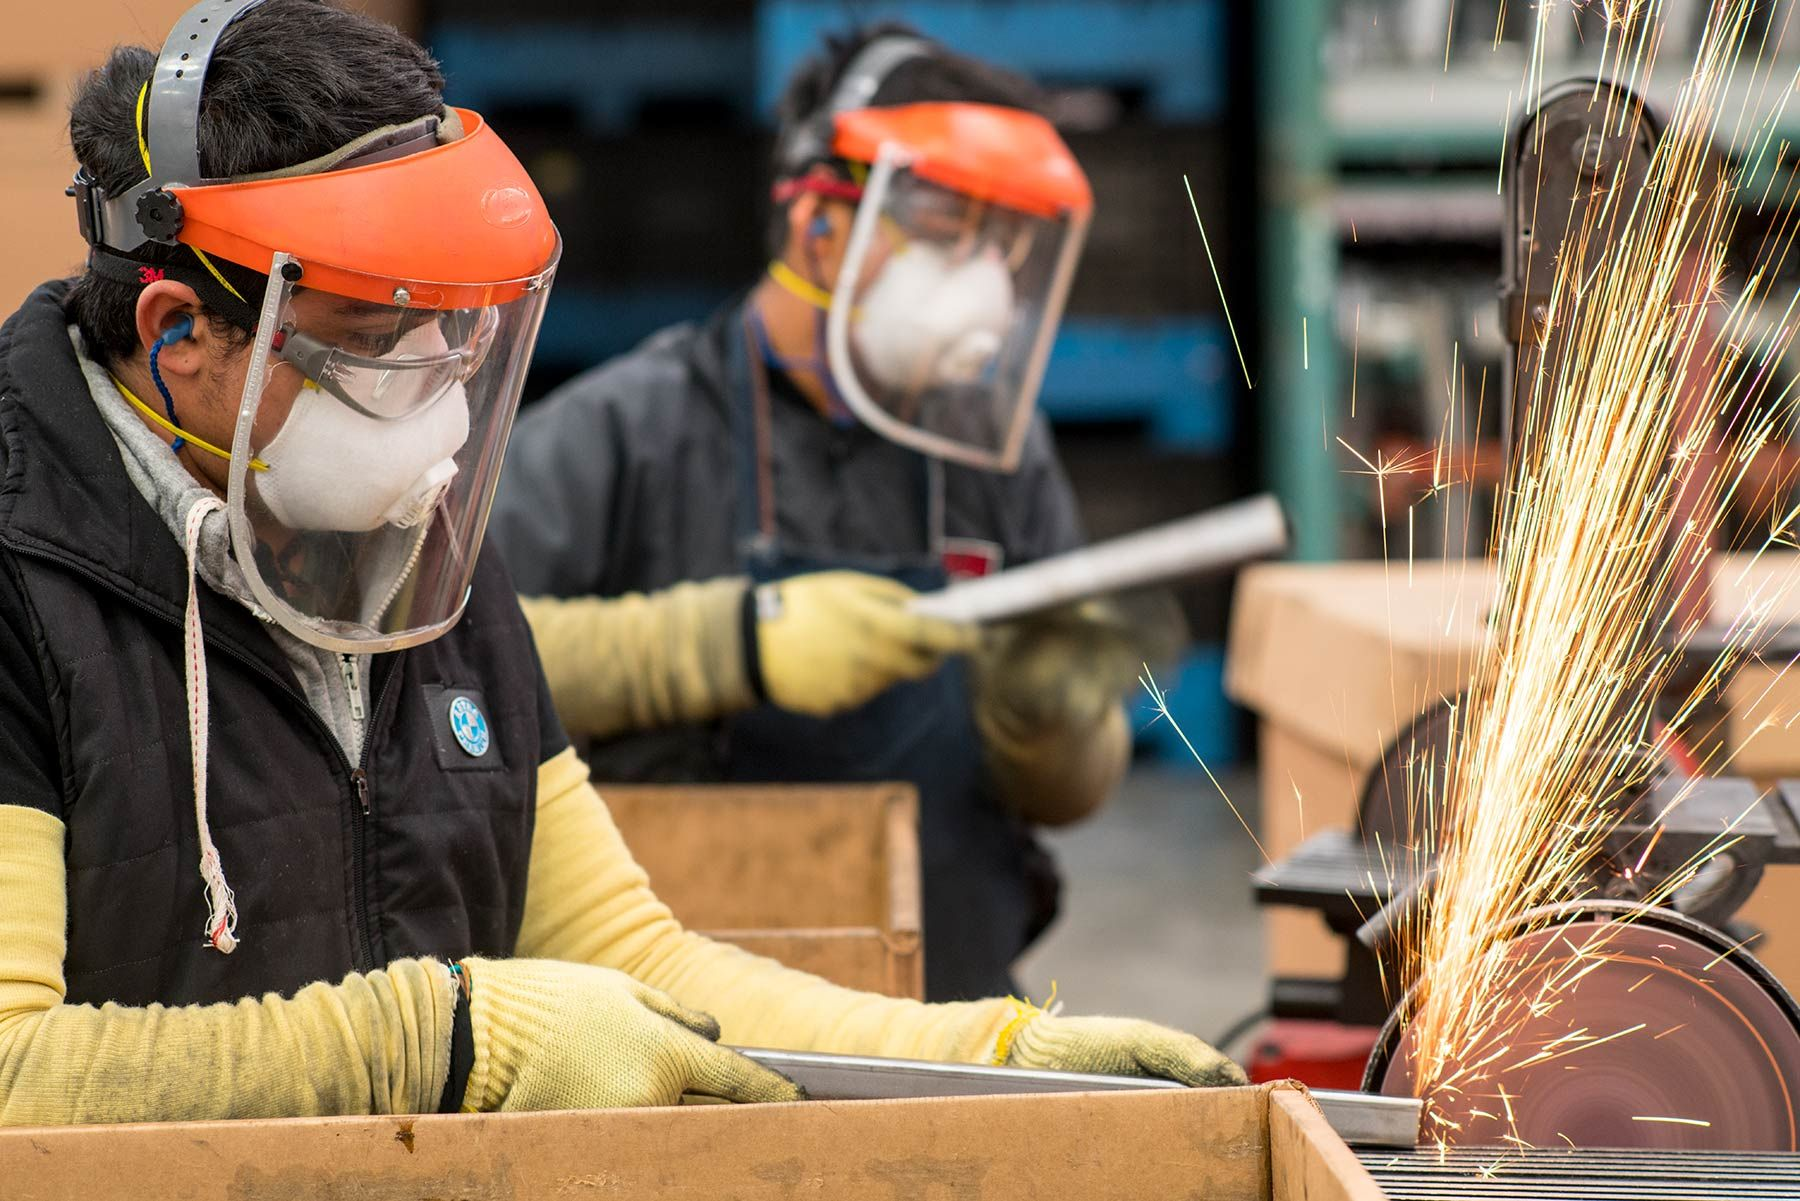 Shape-Queretaro-Mexico-workers-grind-burrs-from-tubing.jpg